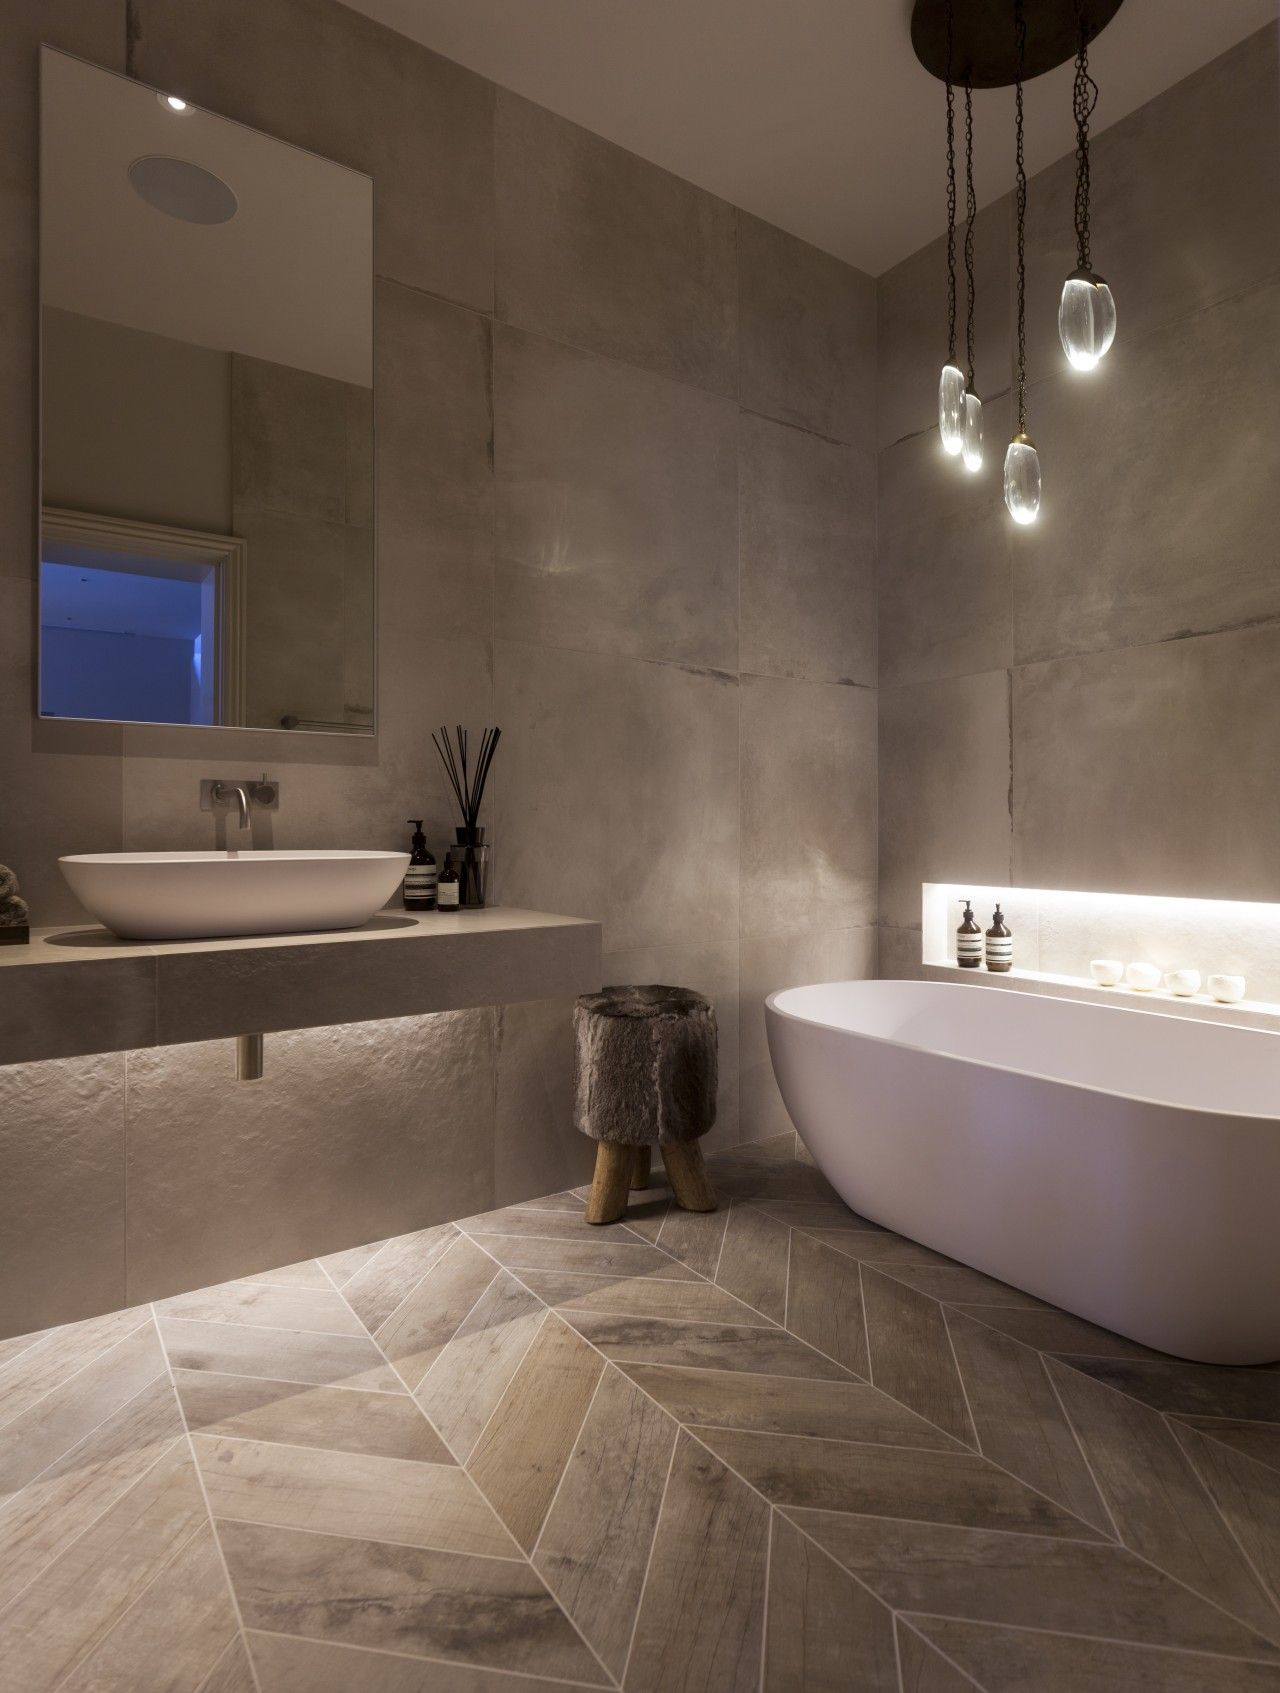 Private residence bath room janey butler interiors for New bathroom floor ideas